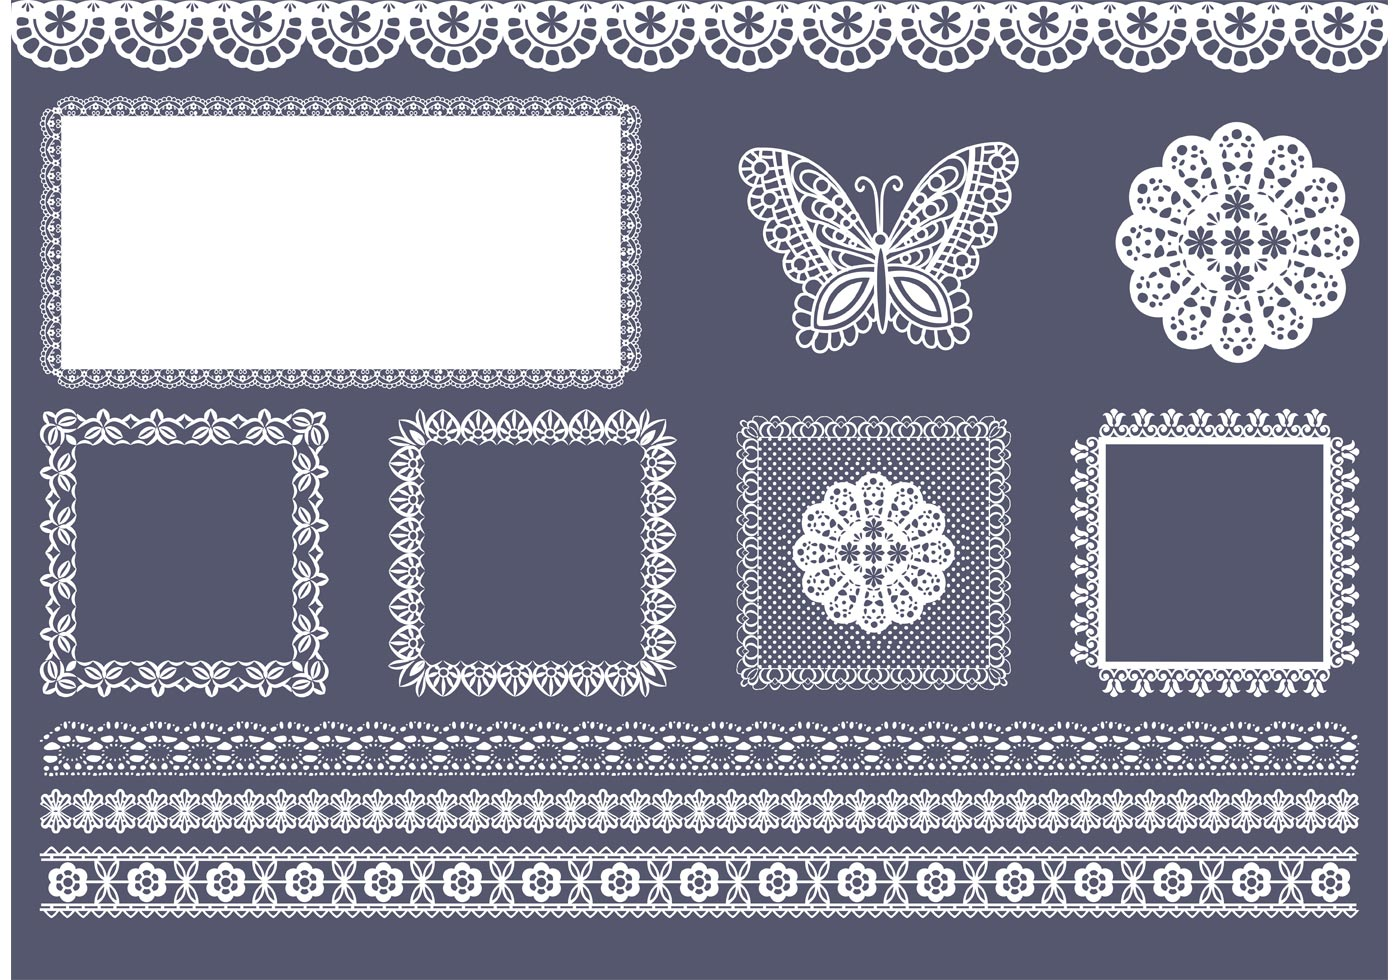 Black And White Victorian Wallpaper Free Vector Square And Border Doily Download Free Vector